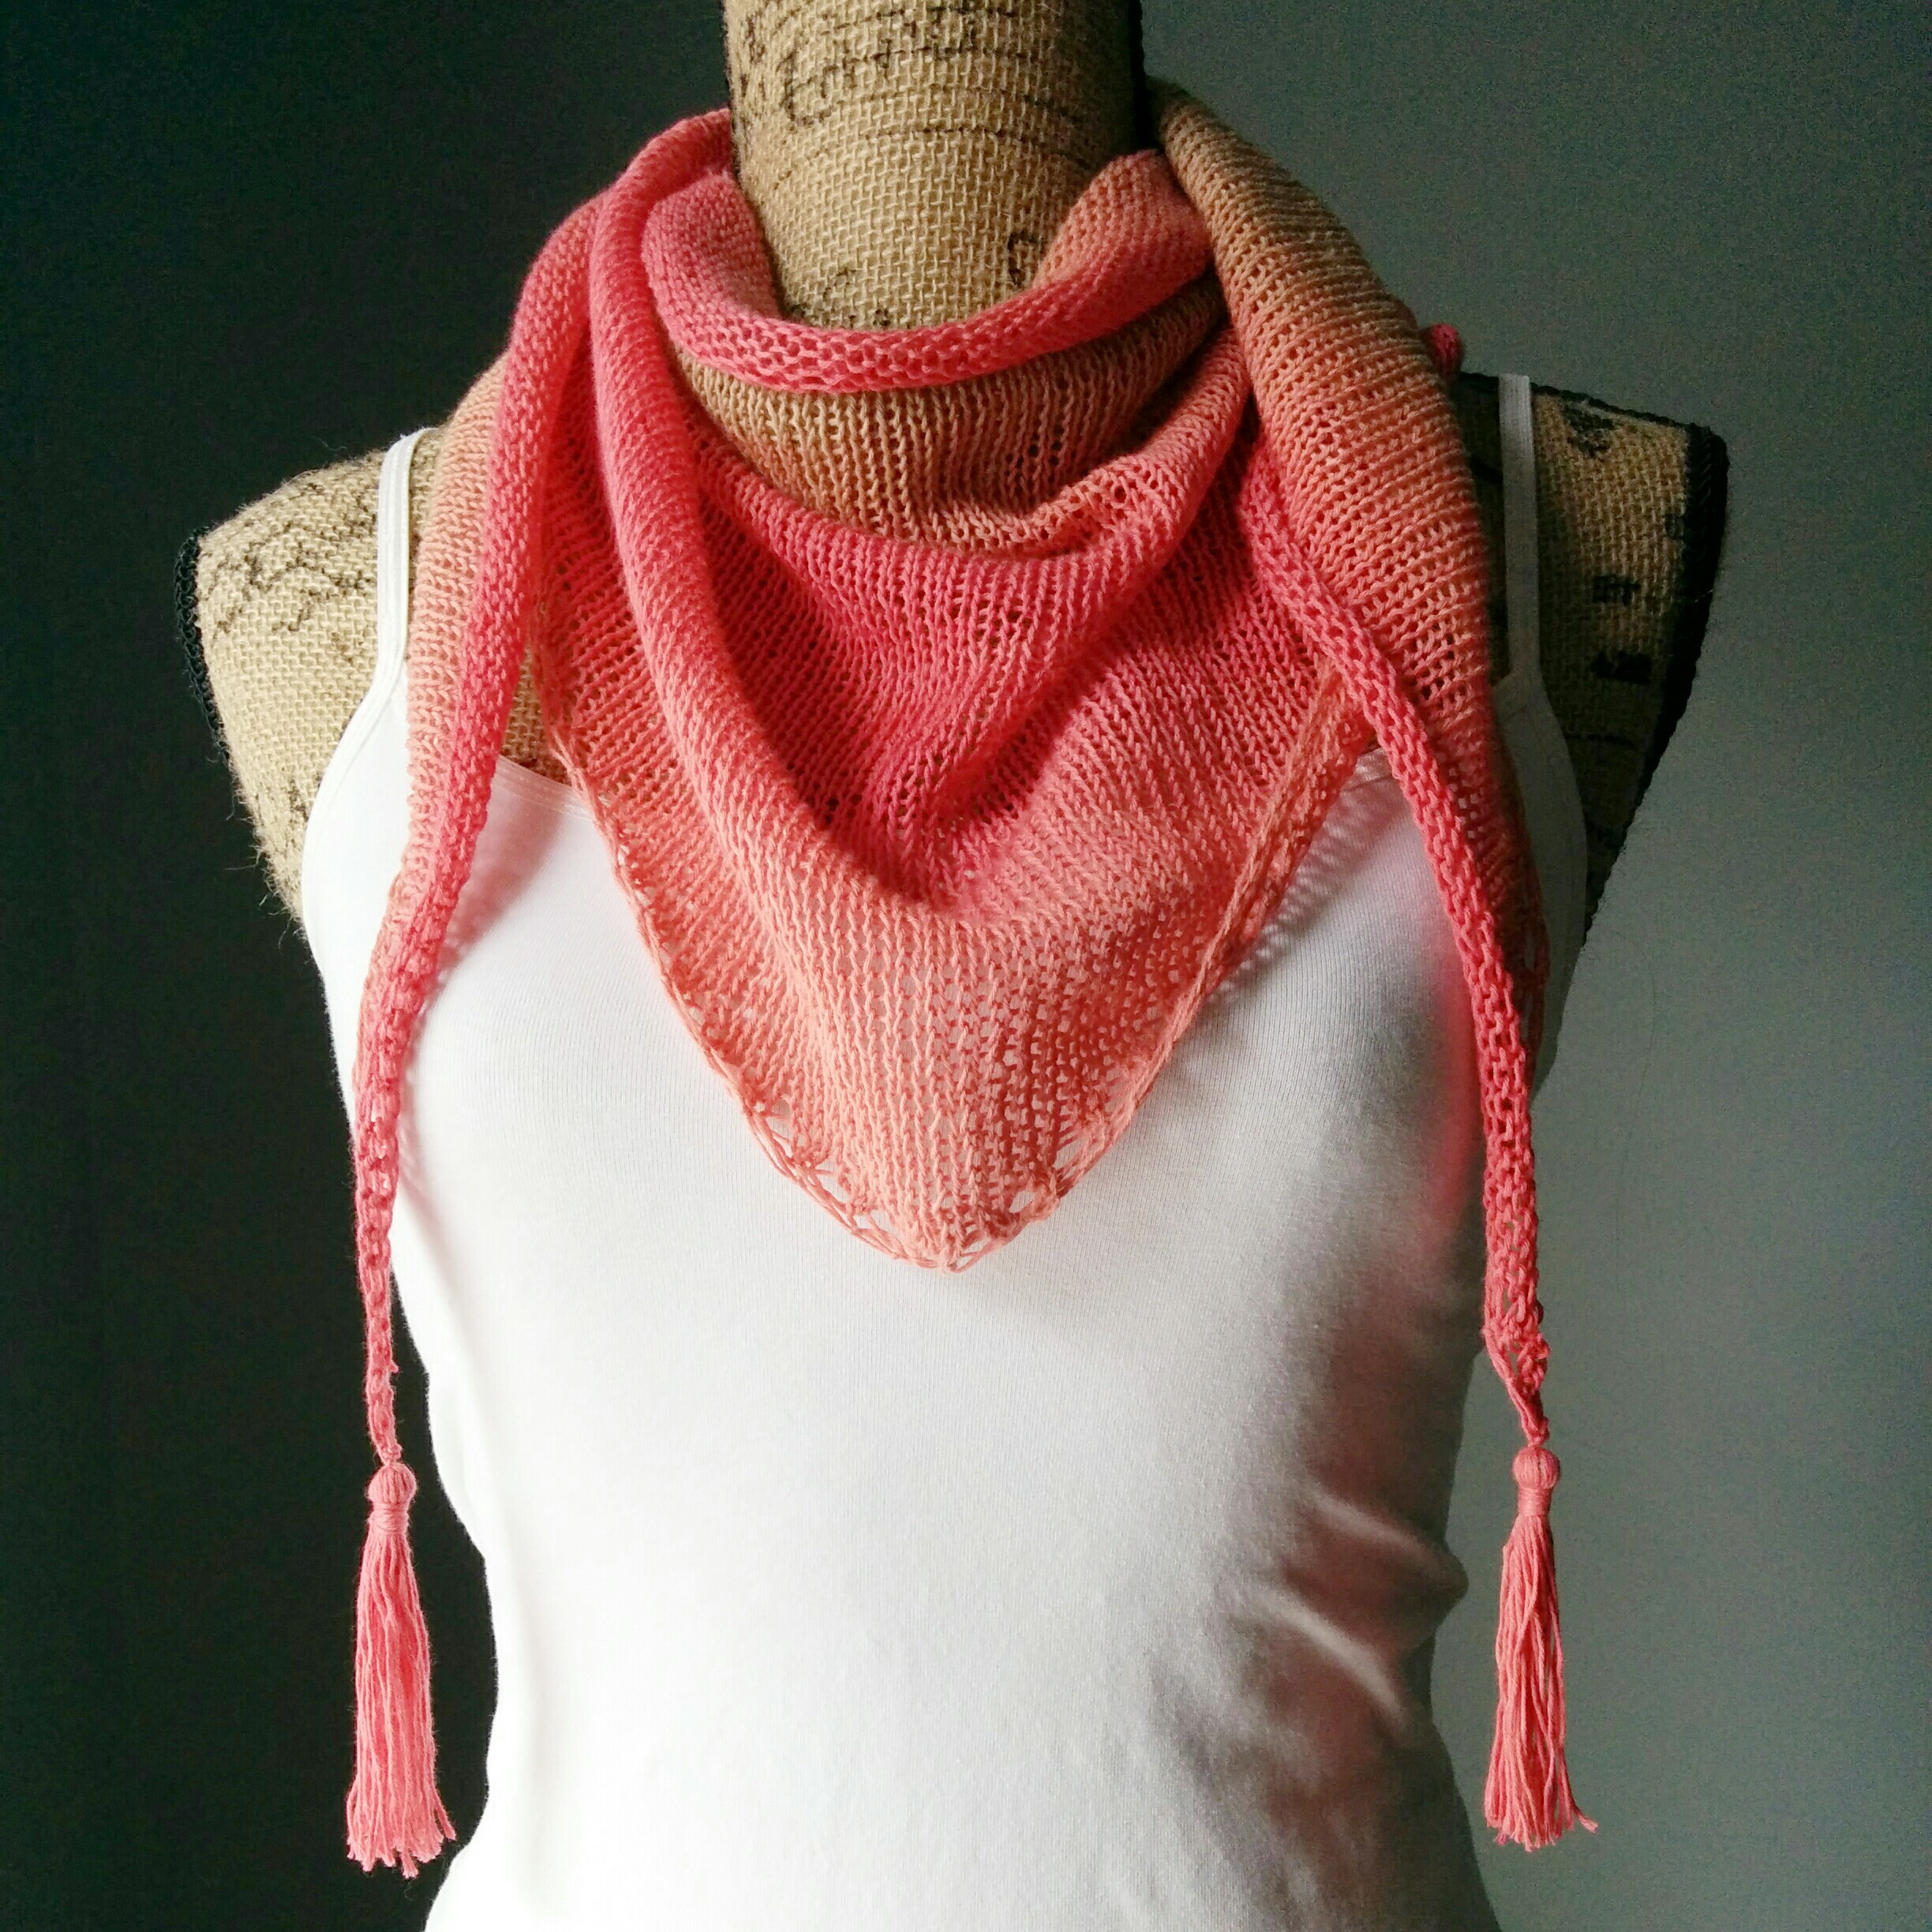 Knitted Stockinette Stitch Scarf Pattern : Stockinette Stitch Shawlette - Purl Avenue